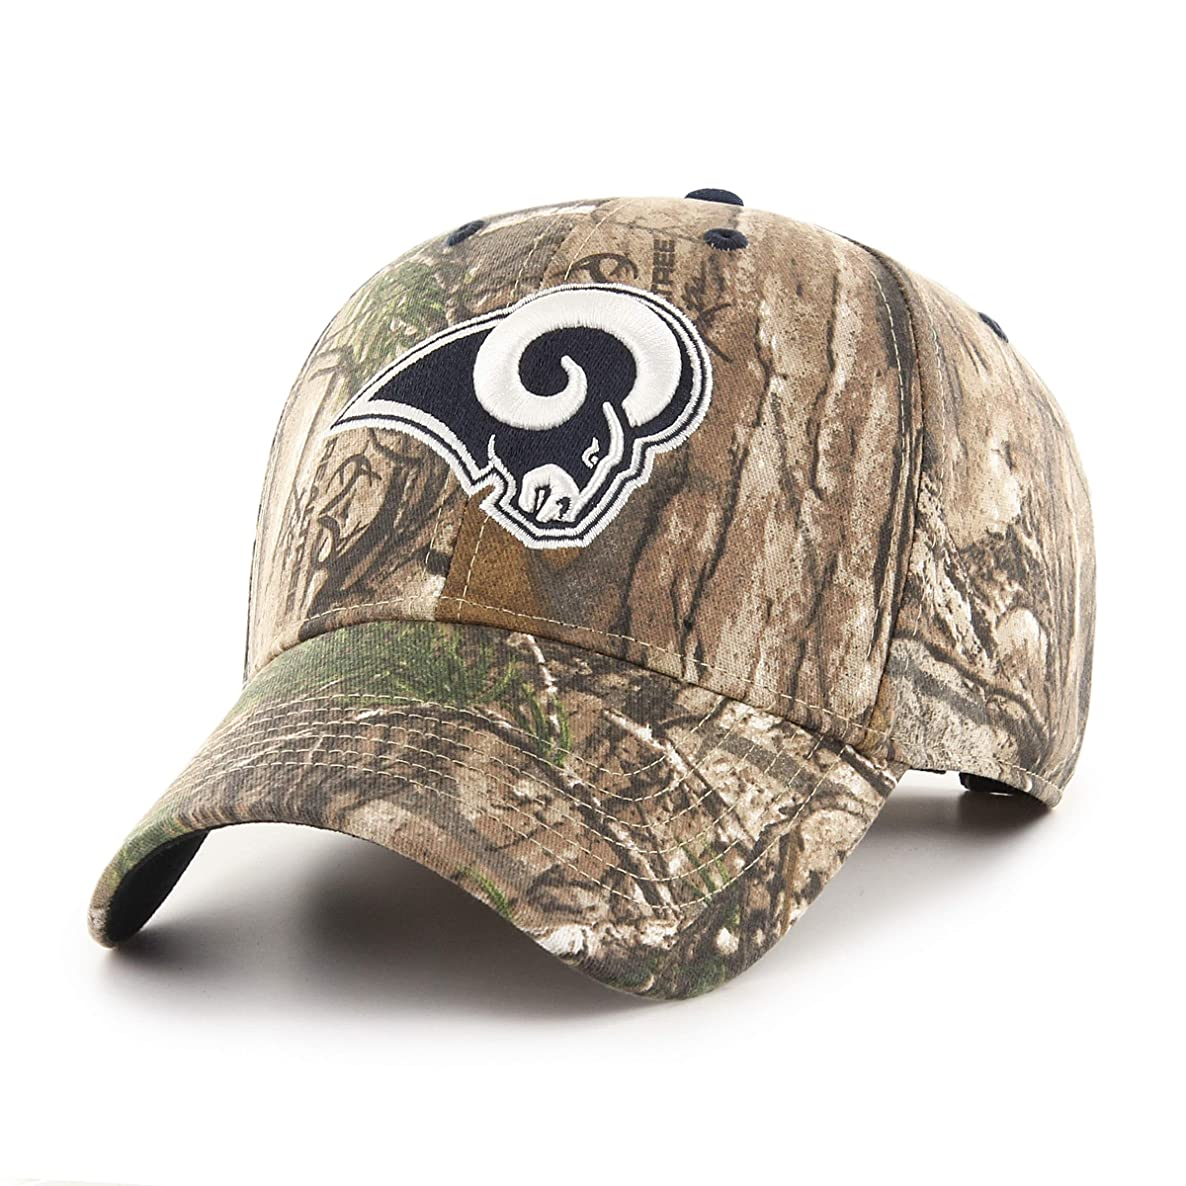 OTS NFL Adult Men's NFL All-Star Adjustable Hat